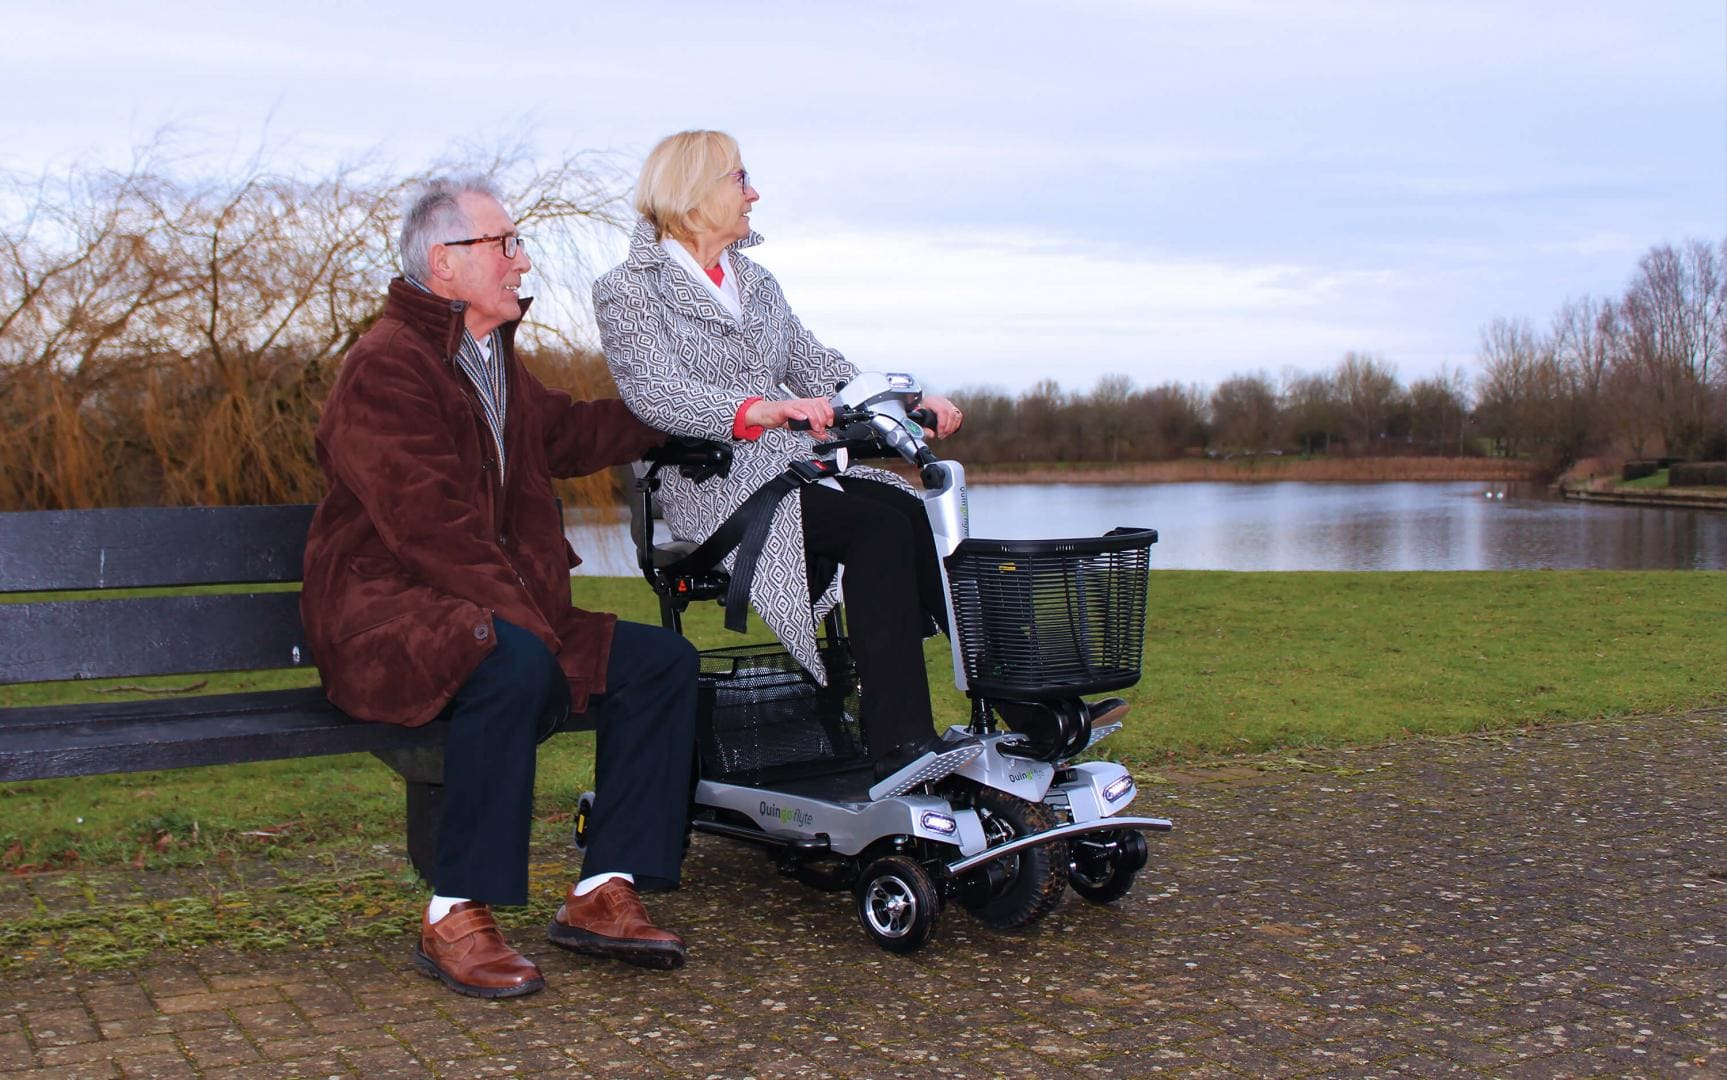 A Lady sitting on a Quingo Flyte electric scooter next to a man in a park